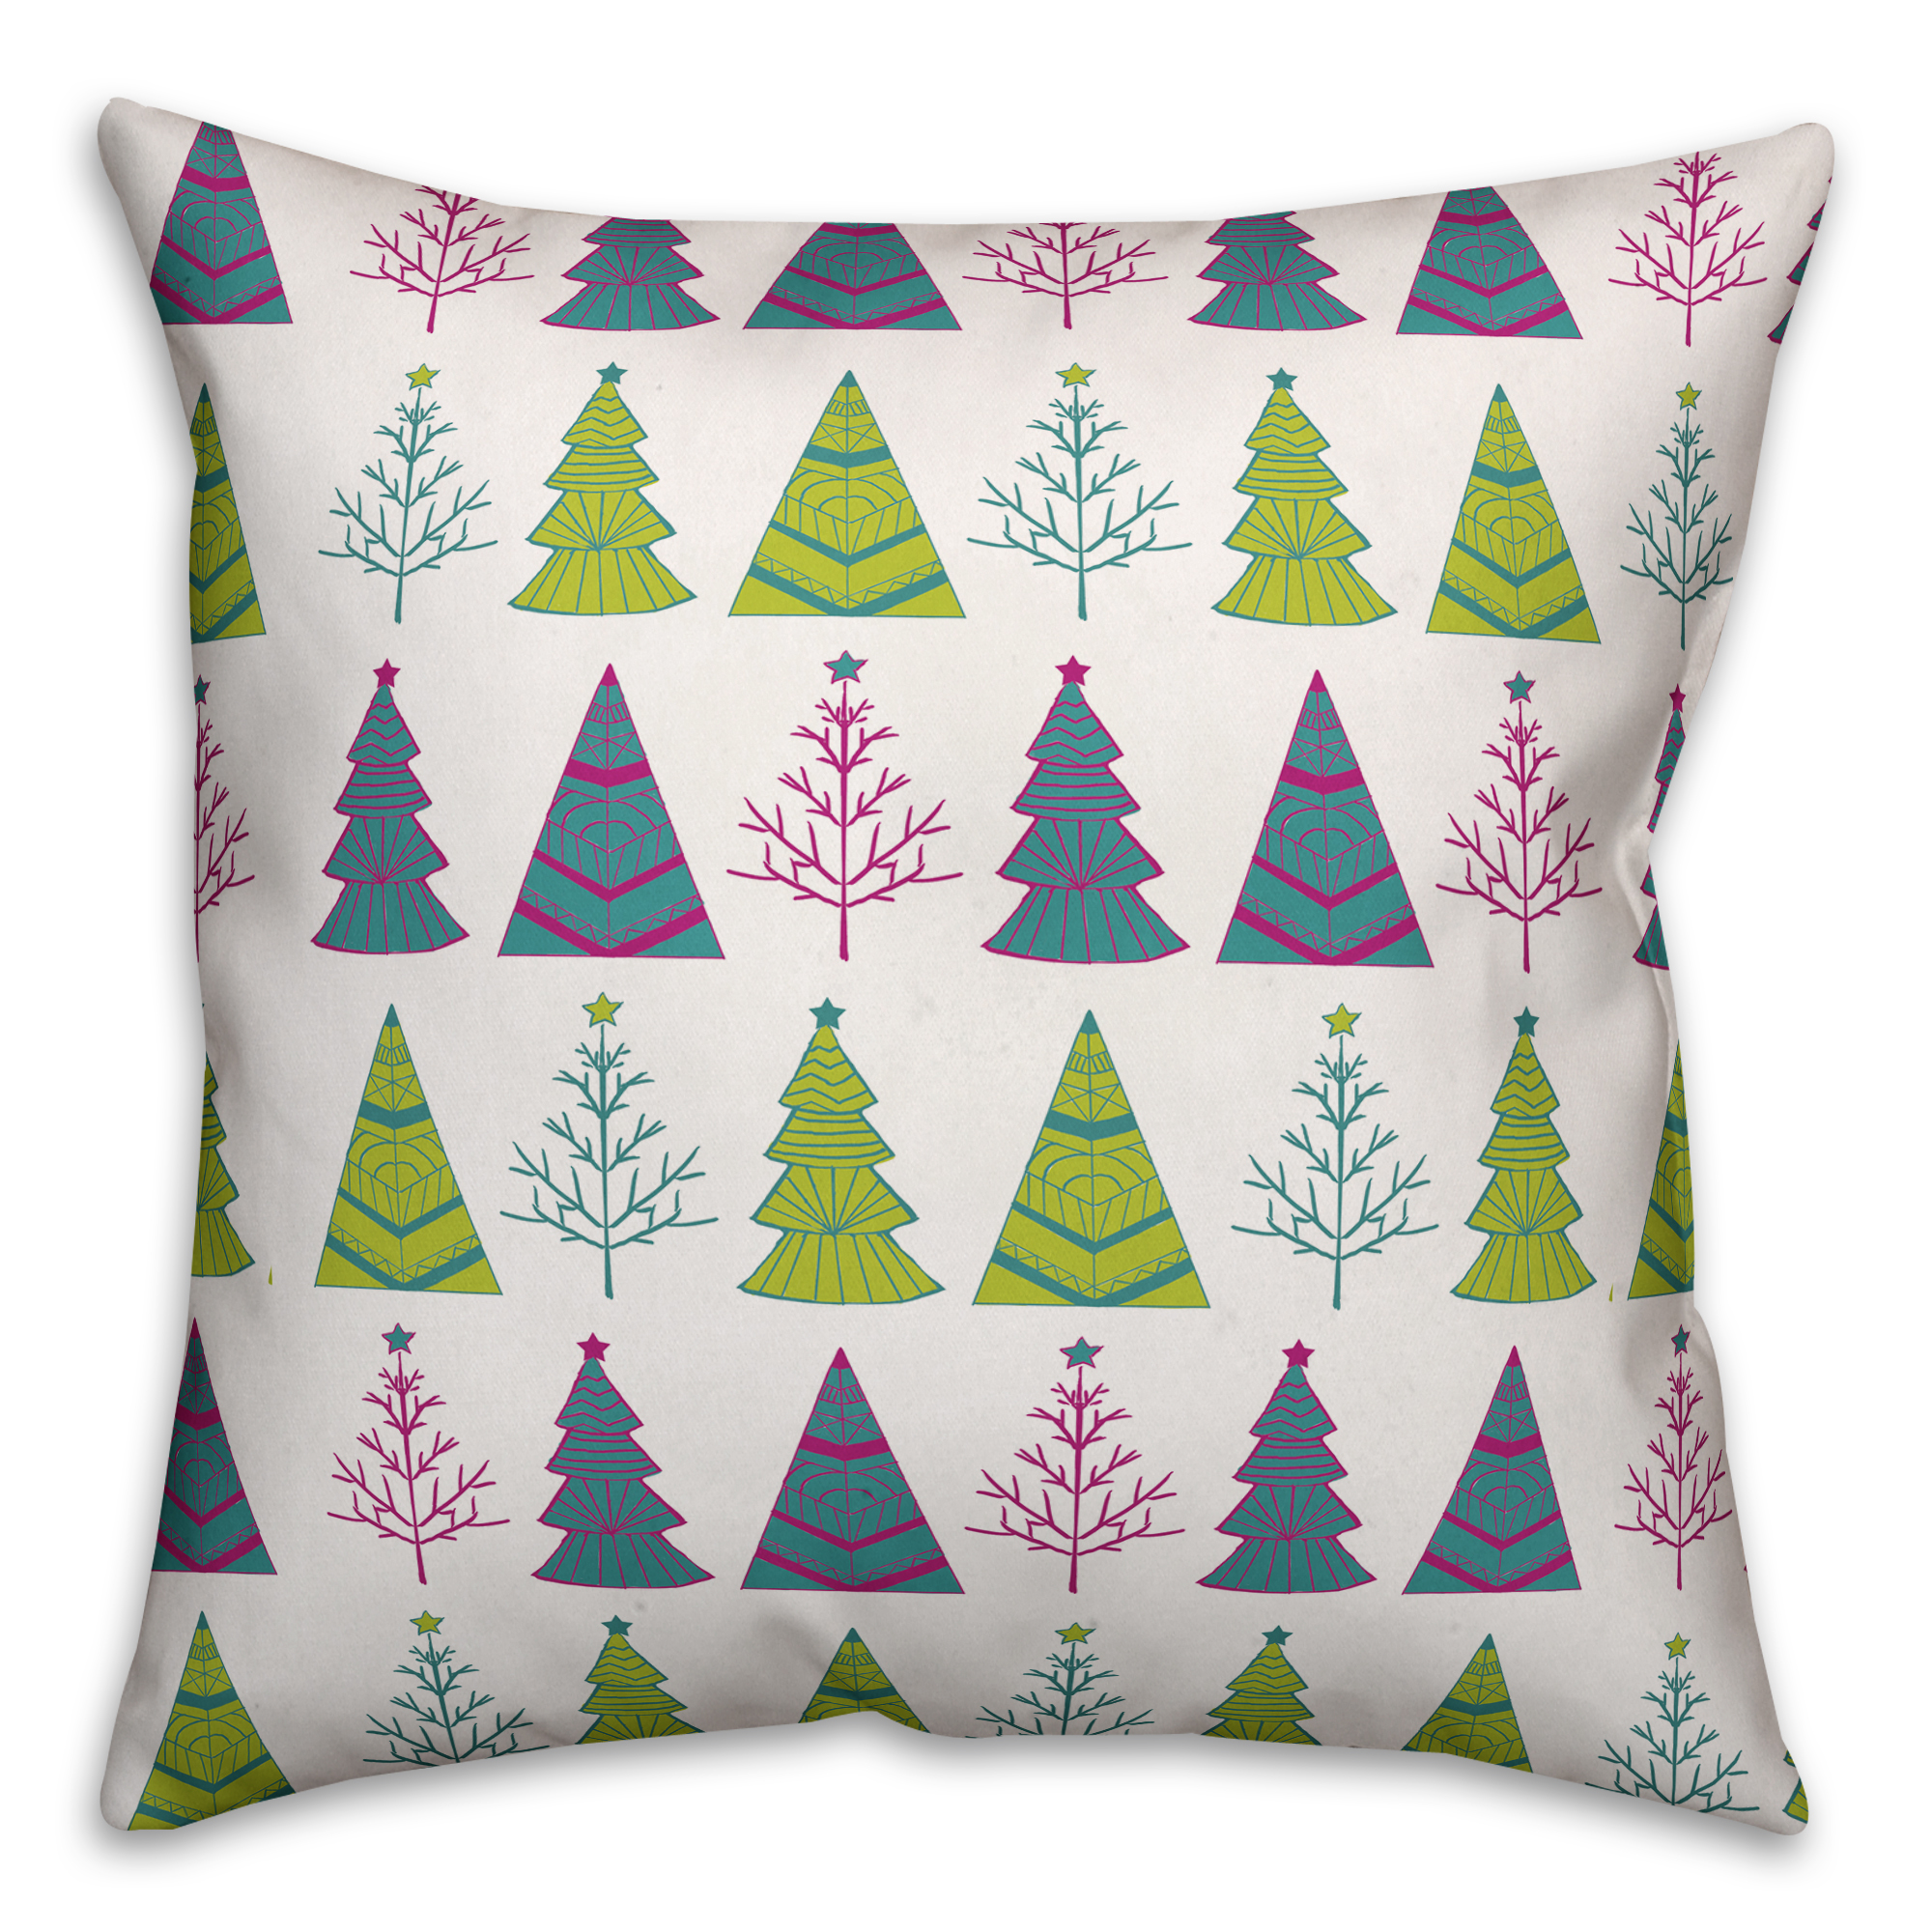 Christmas Tree Pattern 20x20 Spun Poly Pillow